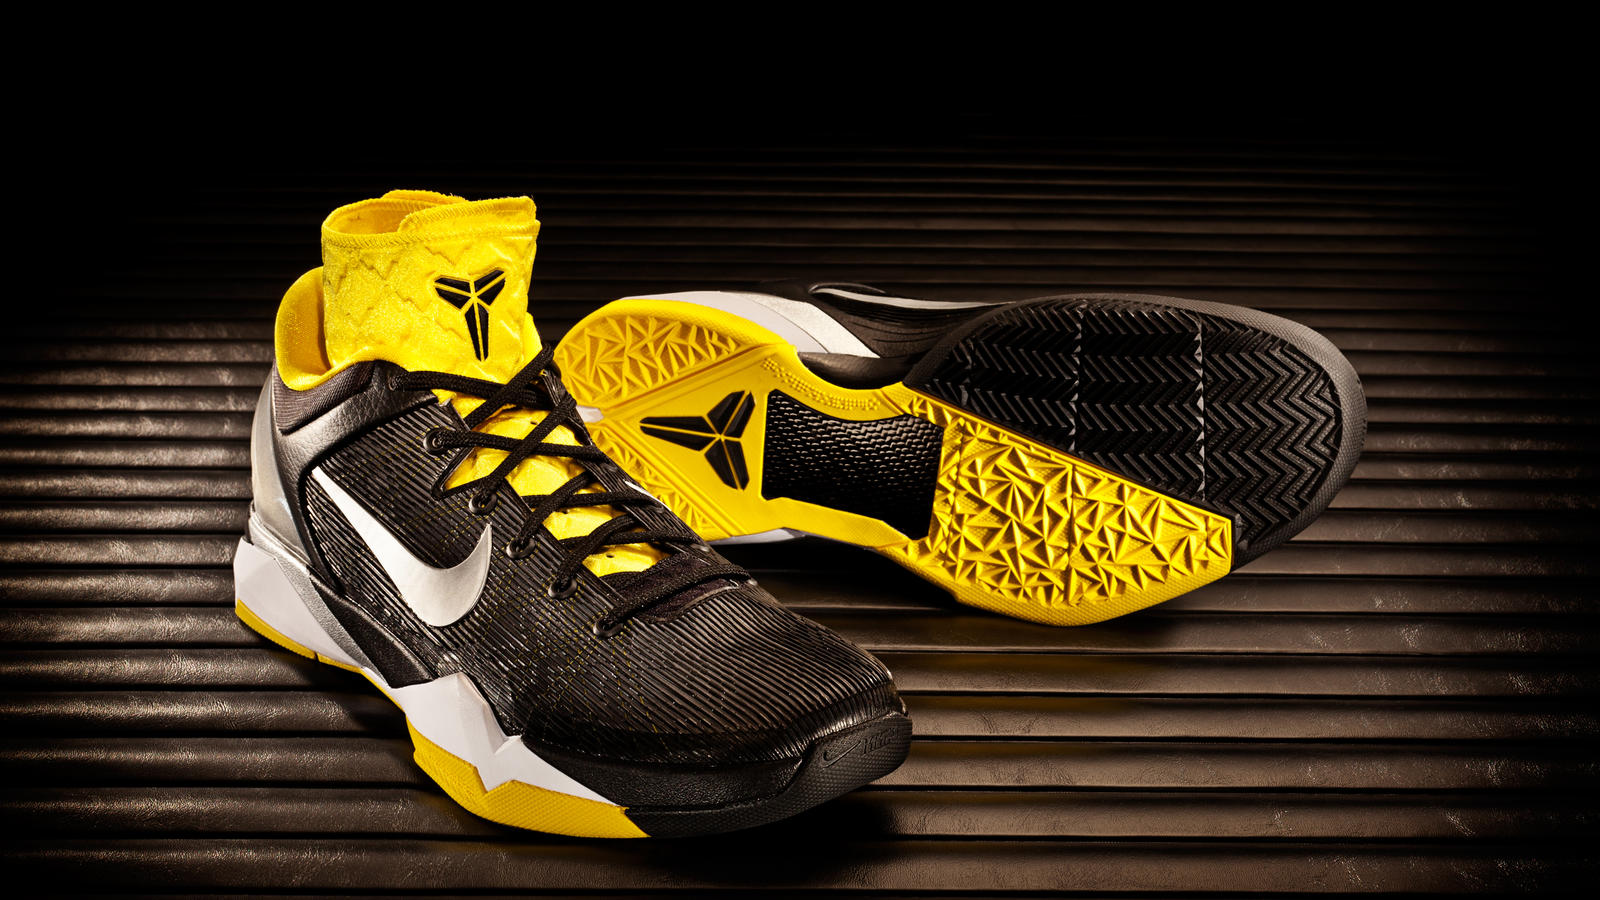 87d2c87227a2 Introducing the Nike Kobe VII System Supreme - Nike News